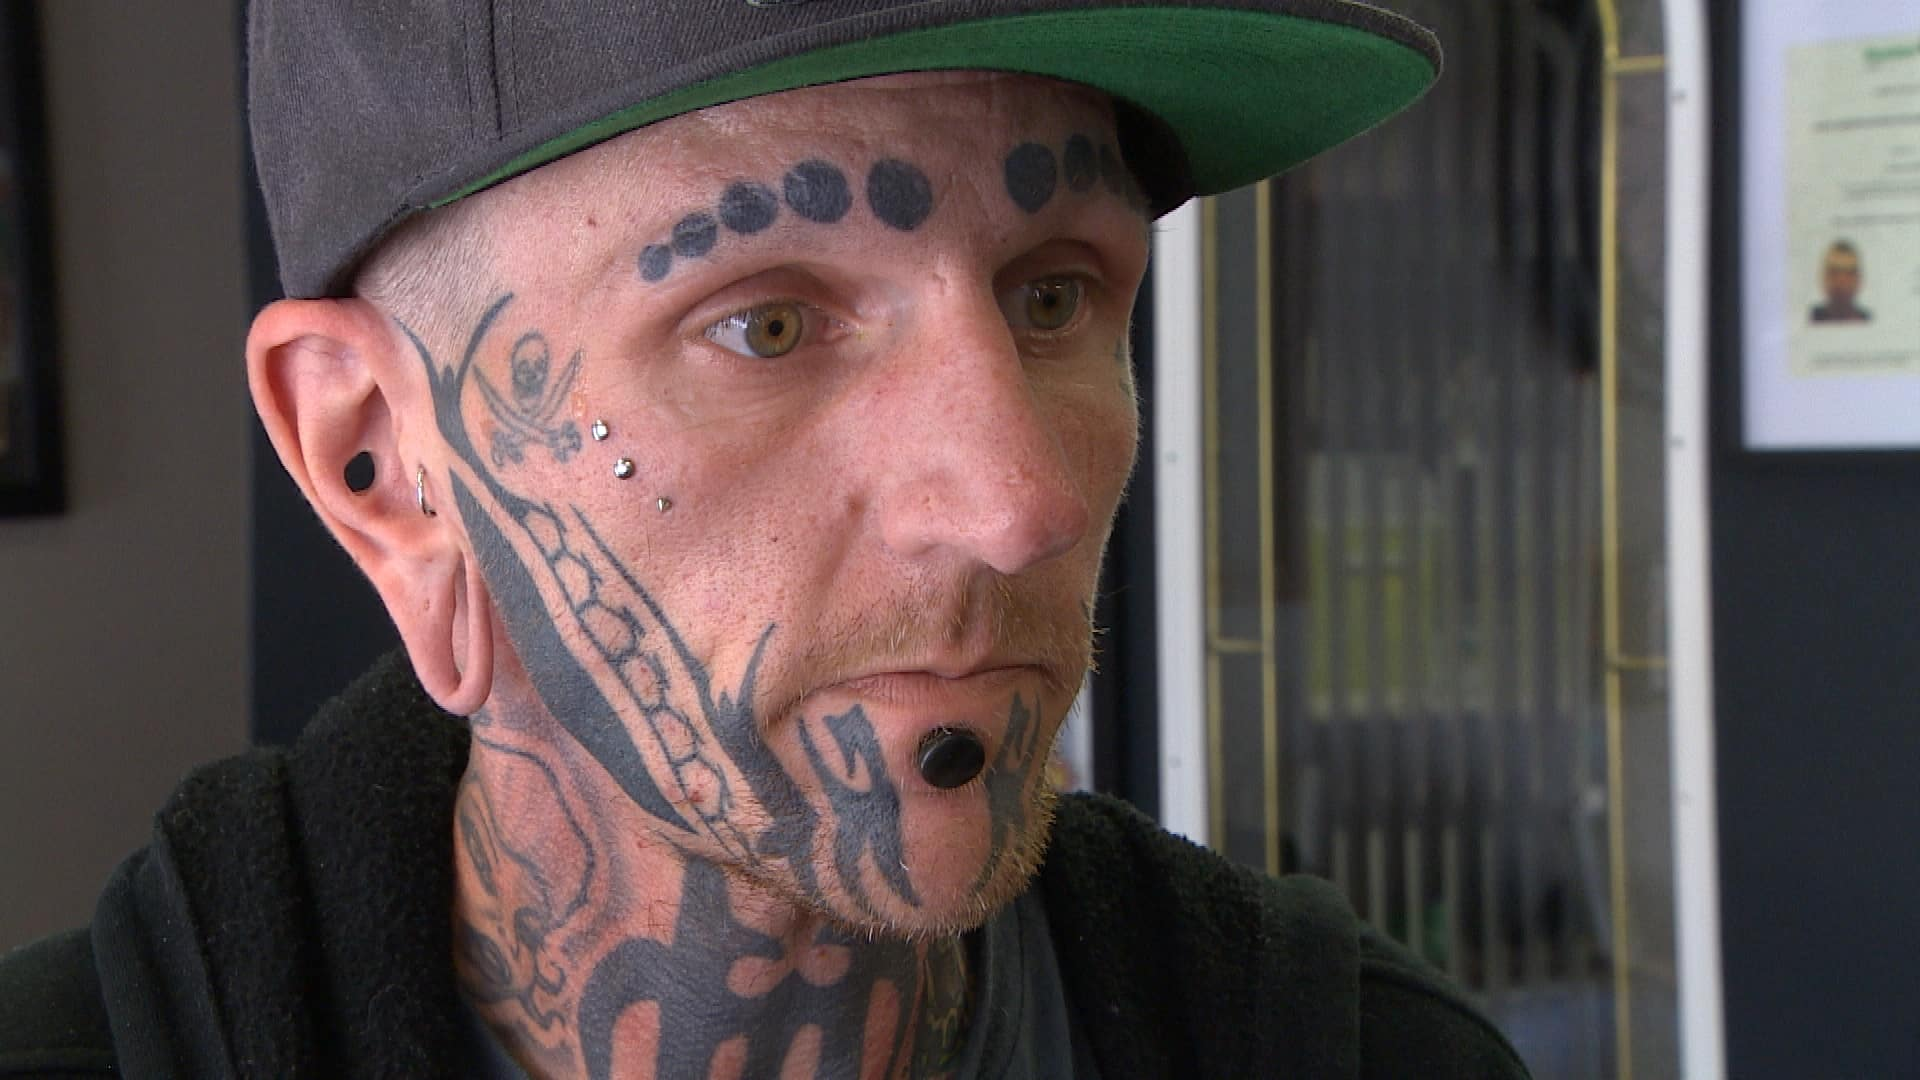 Man with face tattoos denied entry to bar